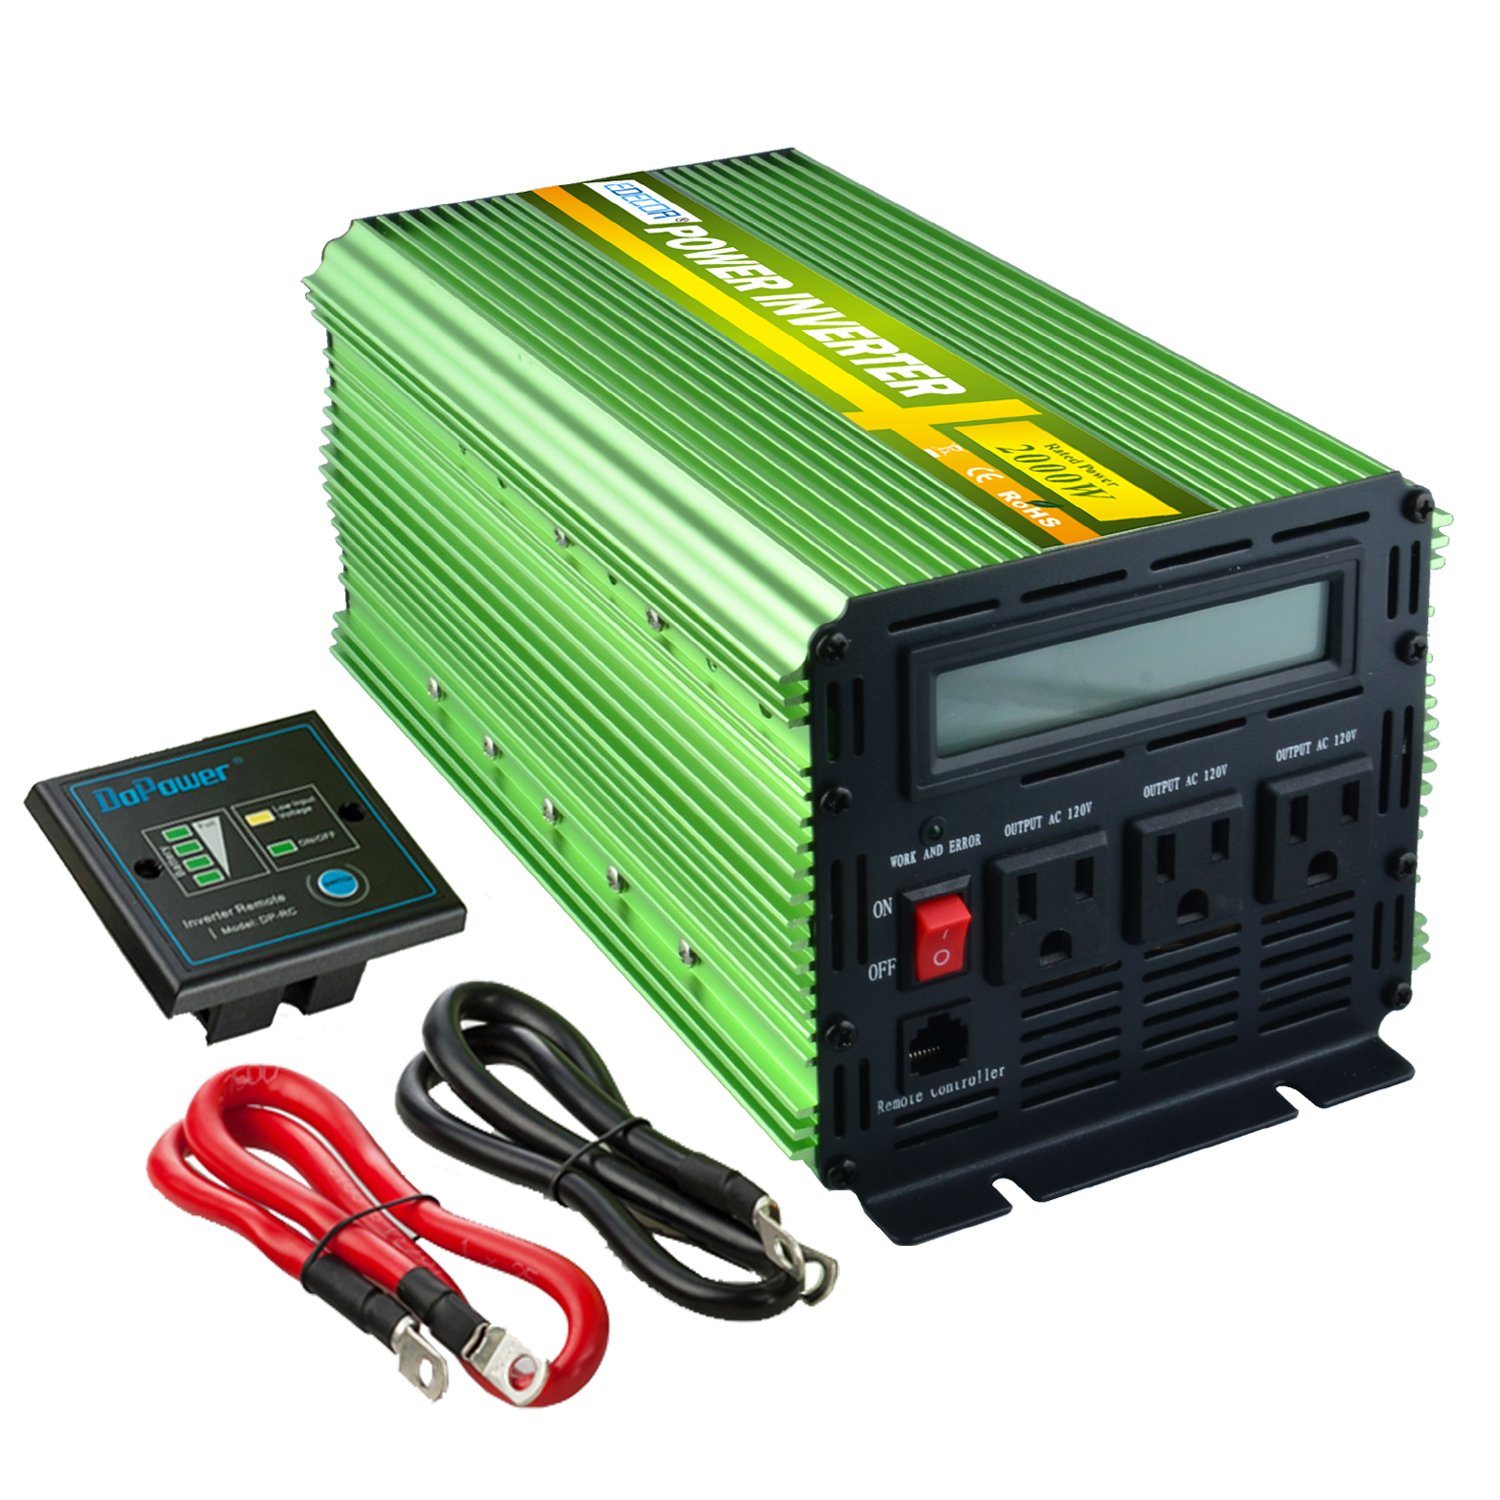 Edeoca 2000W Power Inverter DC 24V to 110V AC Power Converter - Green